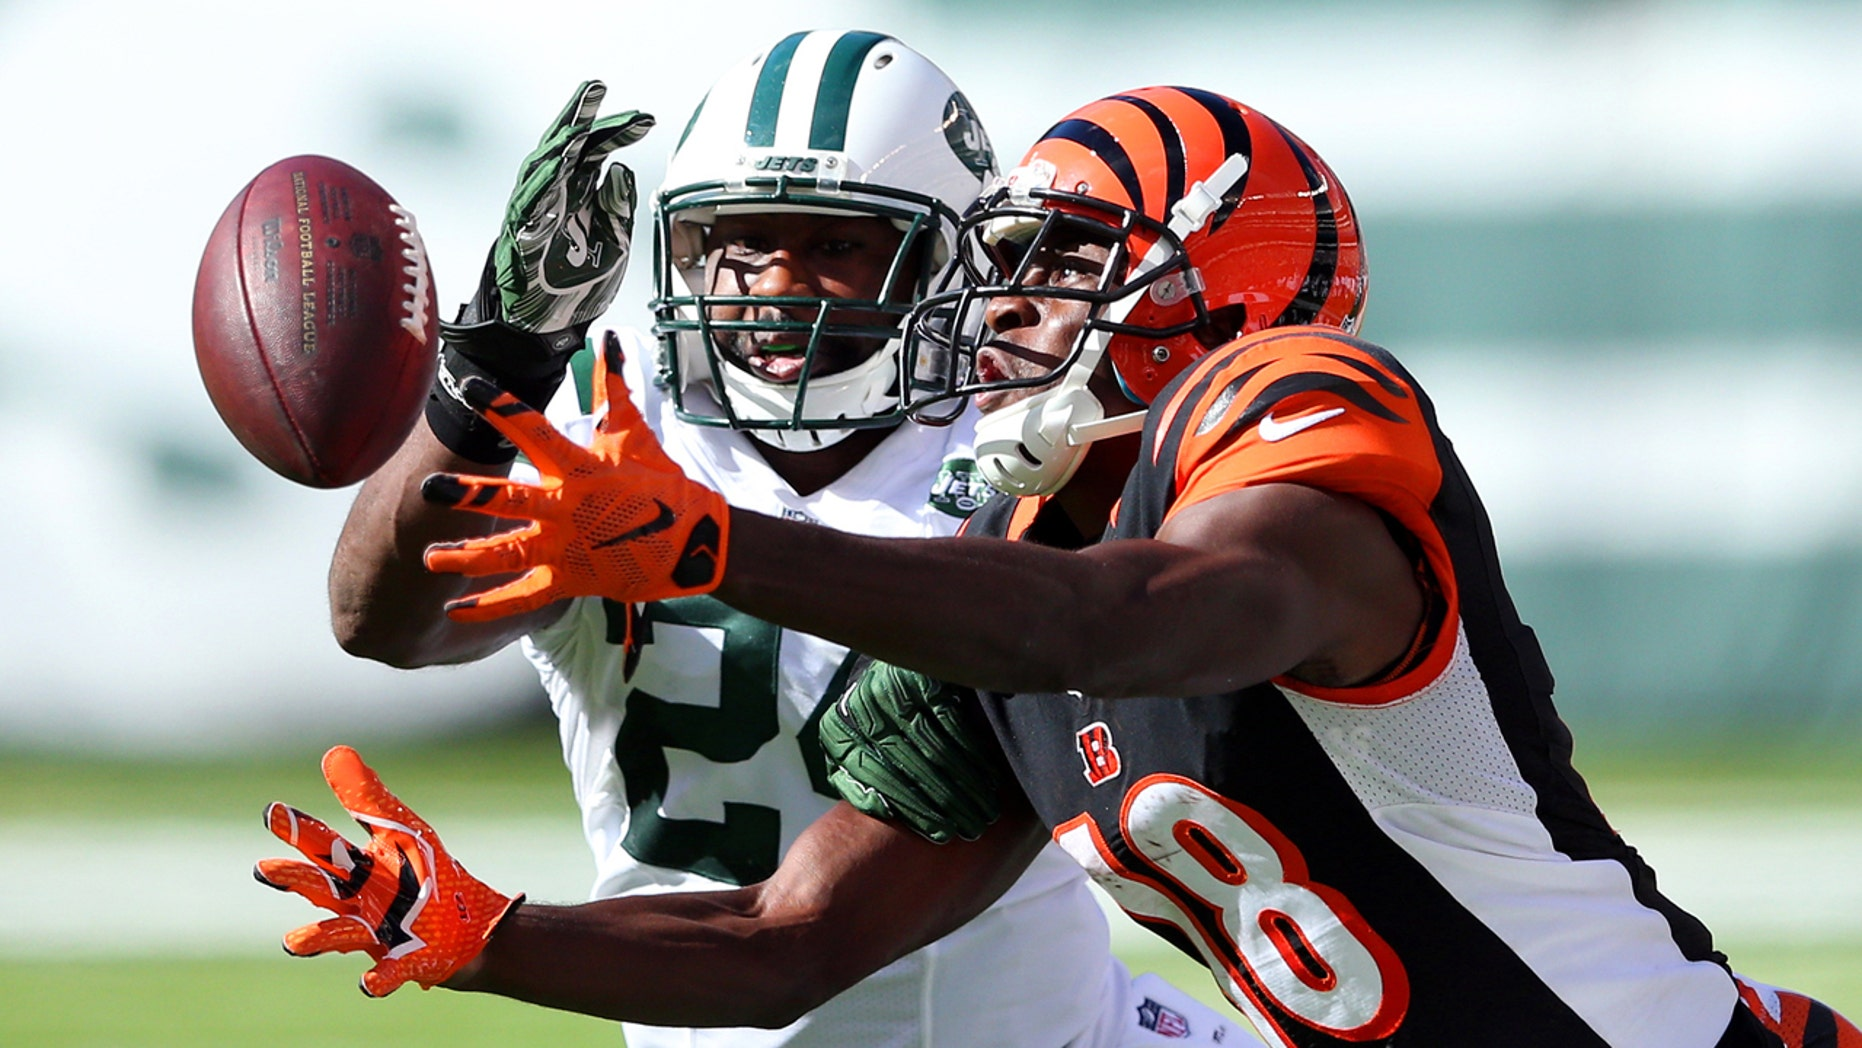 Sep 11, 2016; East Rutherford, NJ, USA; Cincinnati Bengals wide receiver A.J. Green (18) catches a pass in front of New York Jets corner back Darrelle Revis (24) during the fourth quarter at MetLife Stadium. Mandatory Credit: Brad Penner-USA TODAY Sports - RTSN9QC